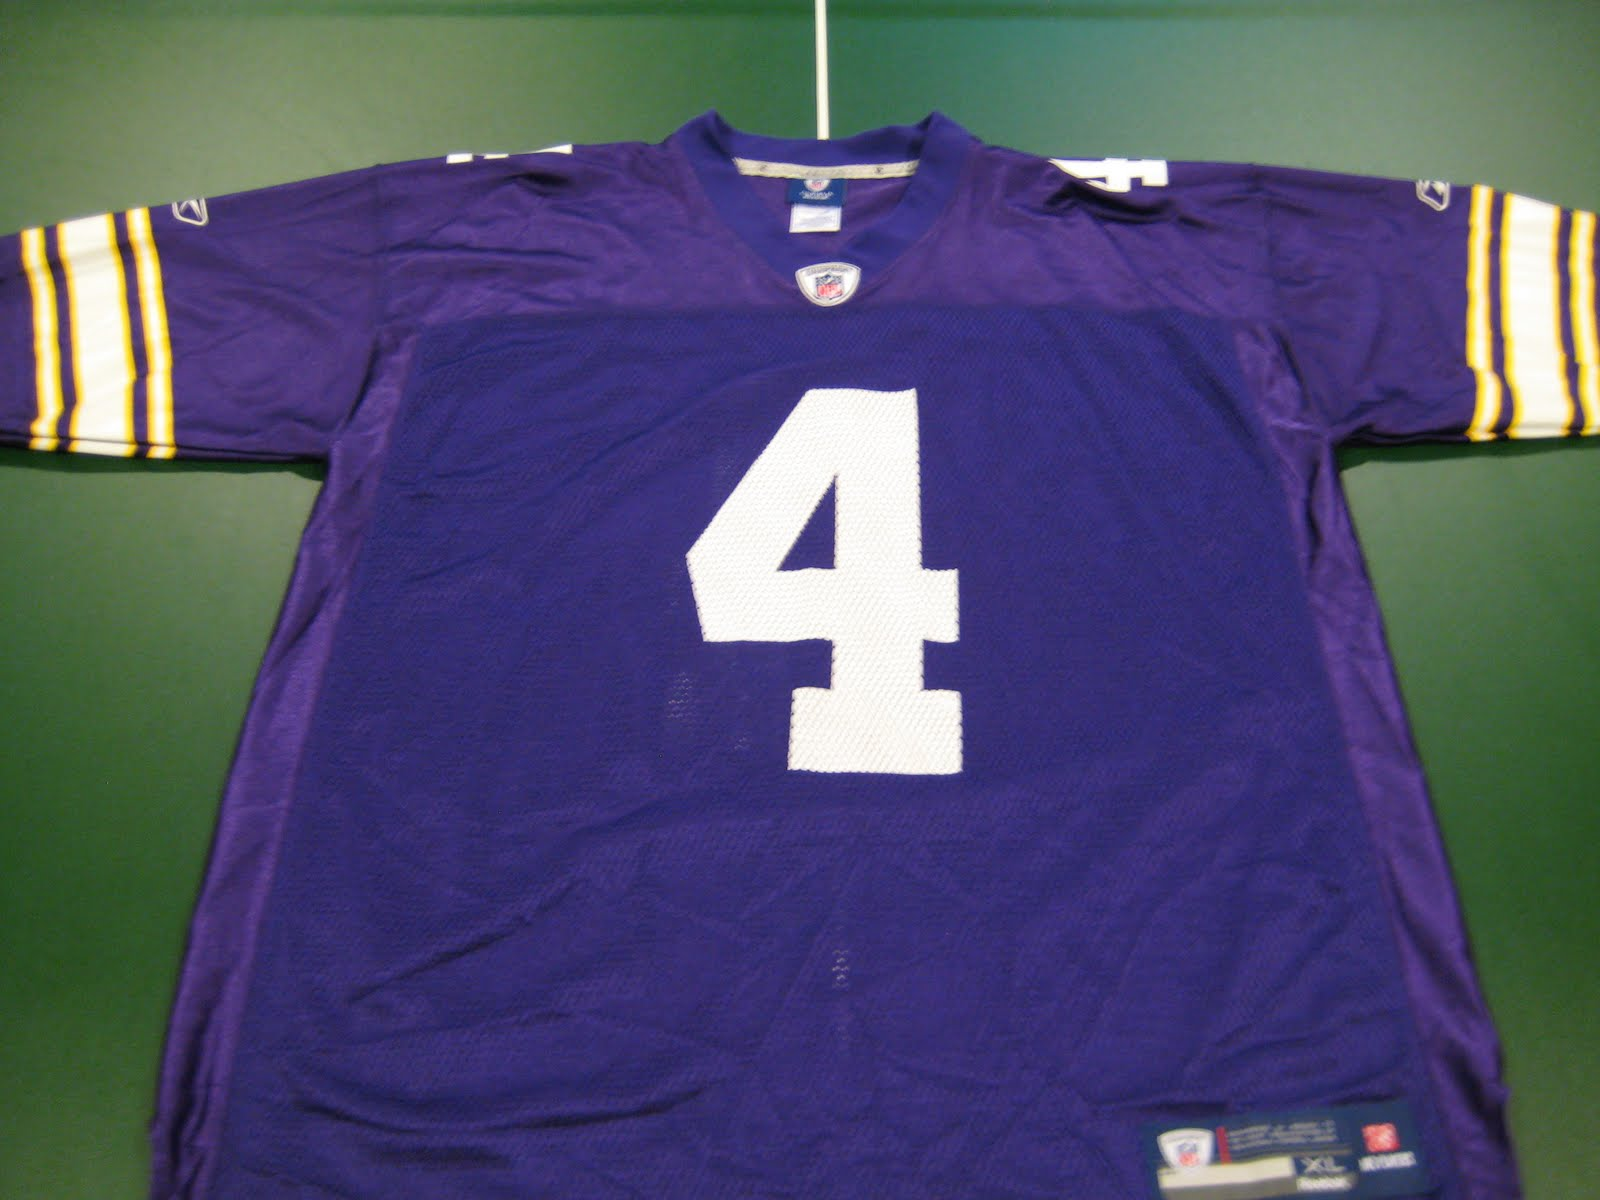 finest selection ee8e5 87dcd Bmac's Jerseys: Brett Favre Replica Alternate/Throwback Jersey